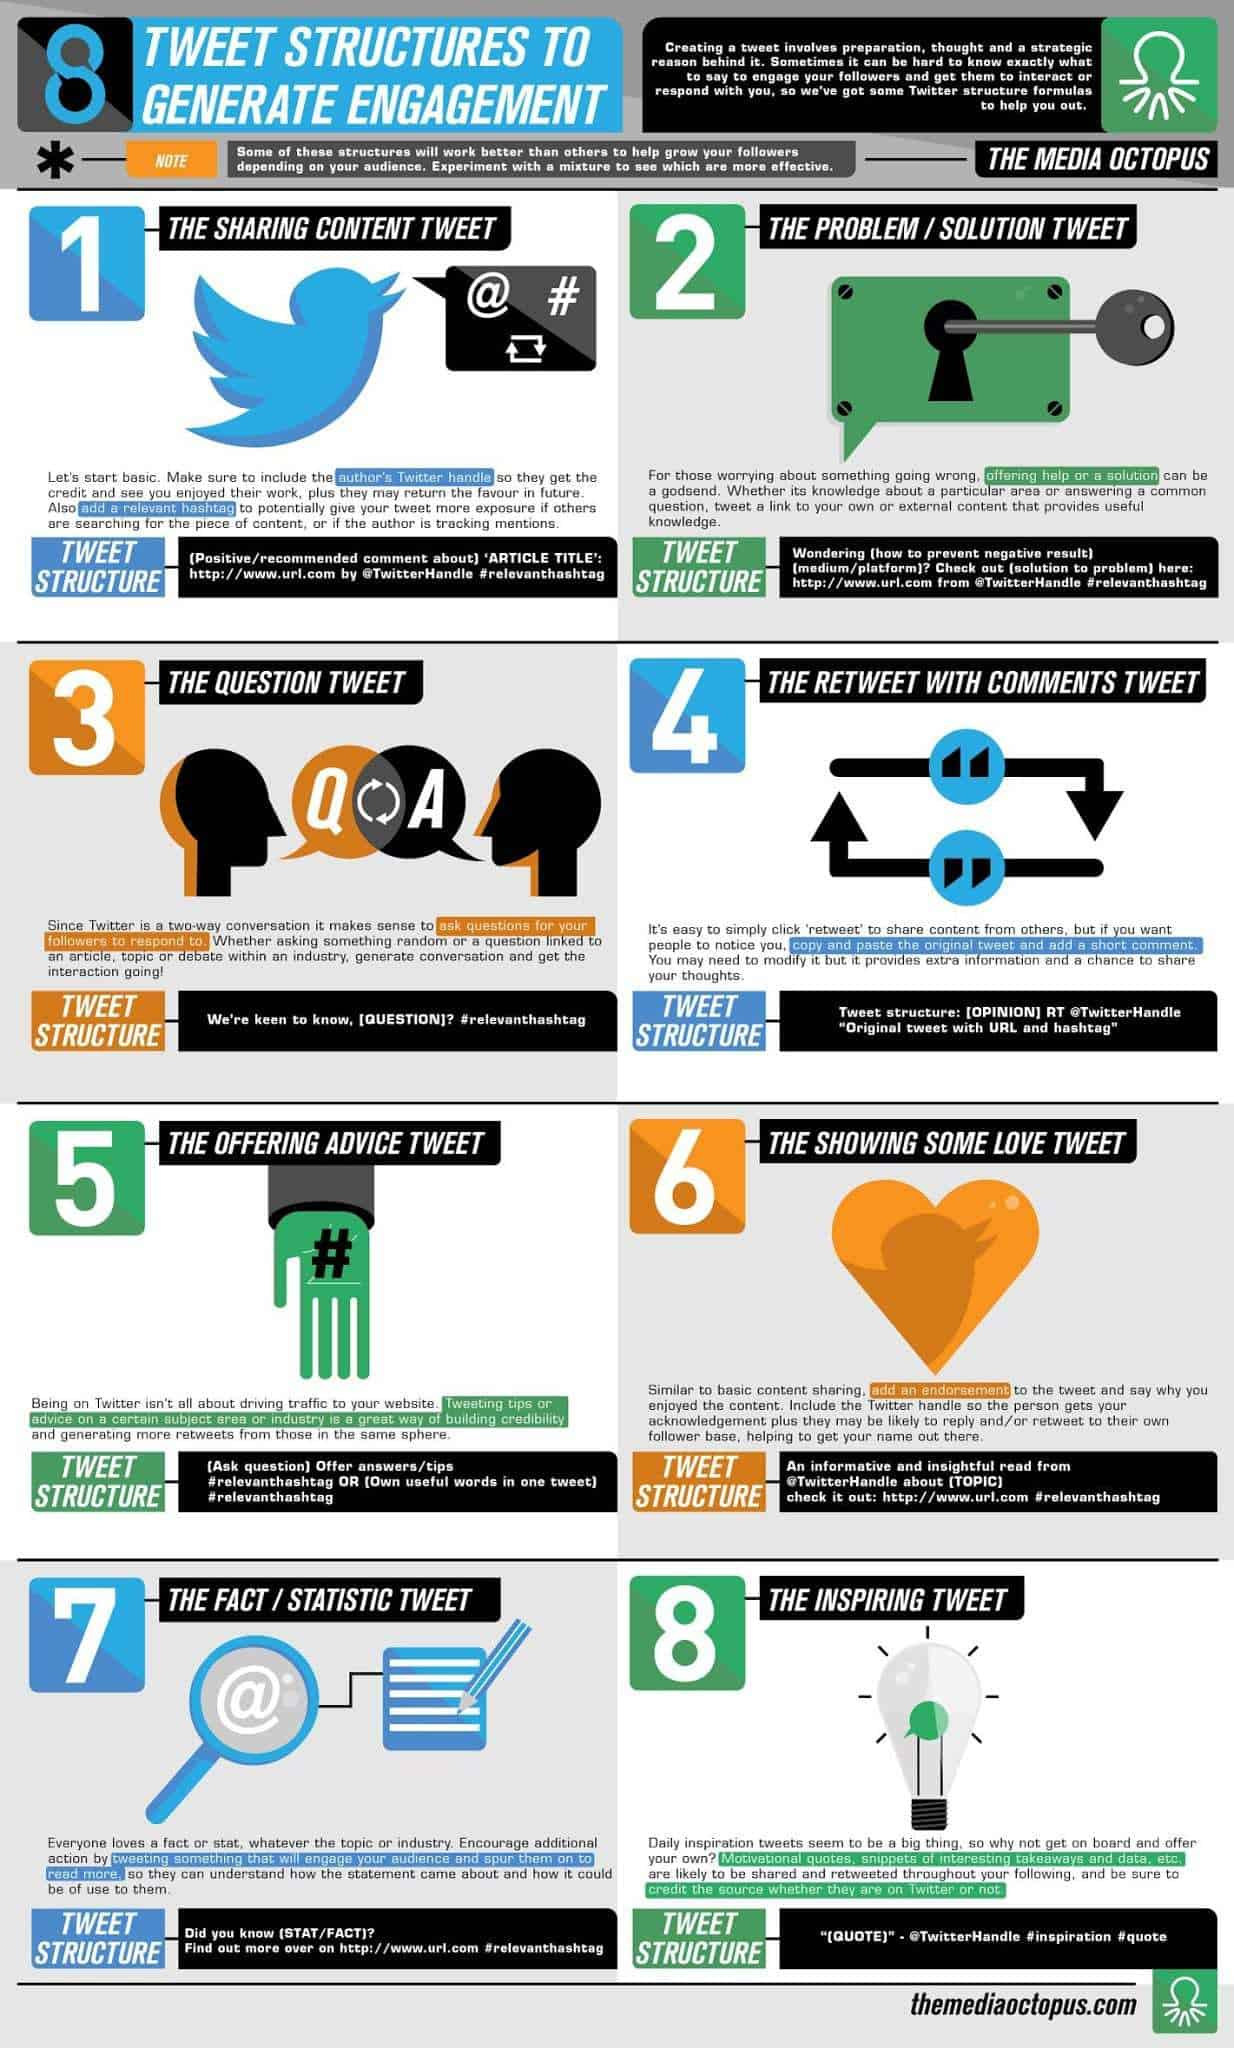 Check out these eight types of Tweet structures that are guaranteed to generate engagement - in this great infographic.